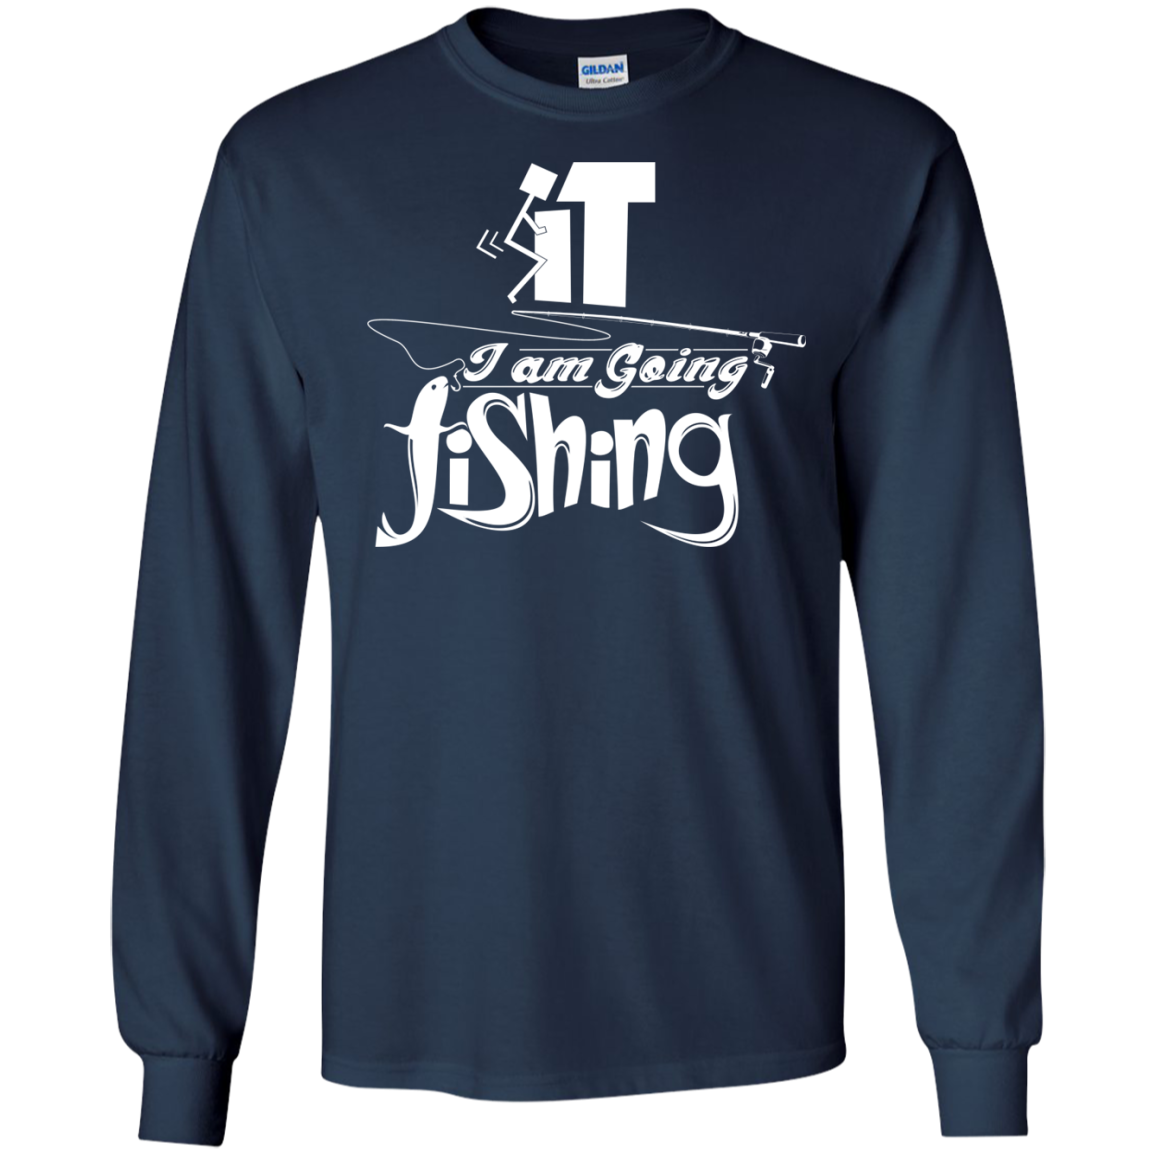 Forget It I am Going Fishing Long Sleeve Tees